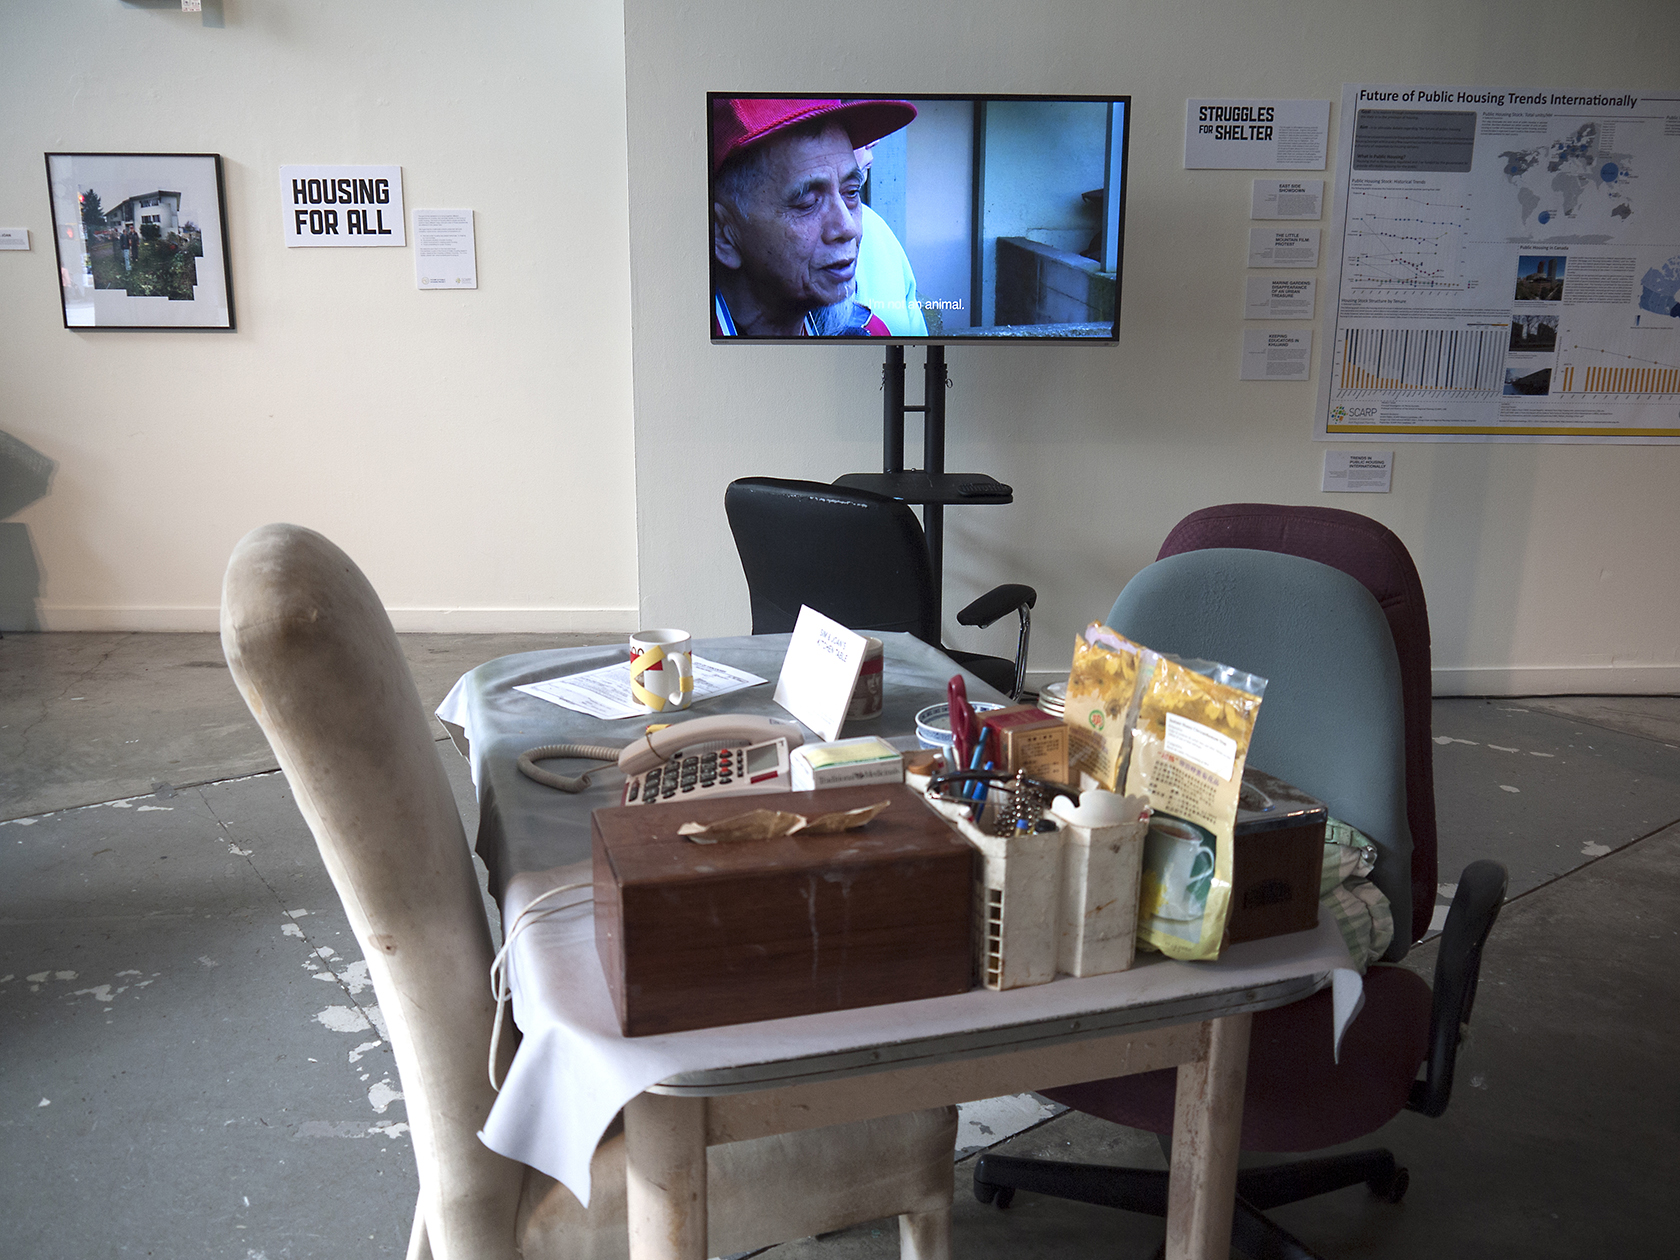 Sim & Joan's Kitchen Table and excerpt from the Little Mountain Film on Screen.The Little Mountain Project – Interurban Gallery May 2015.